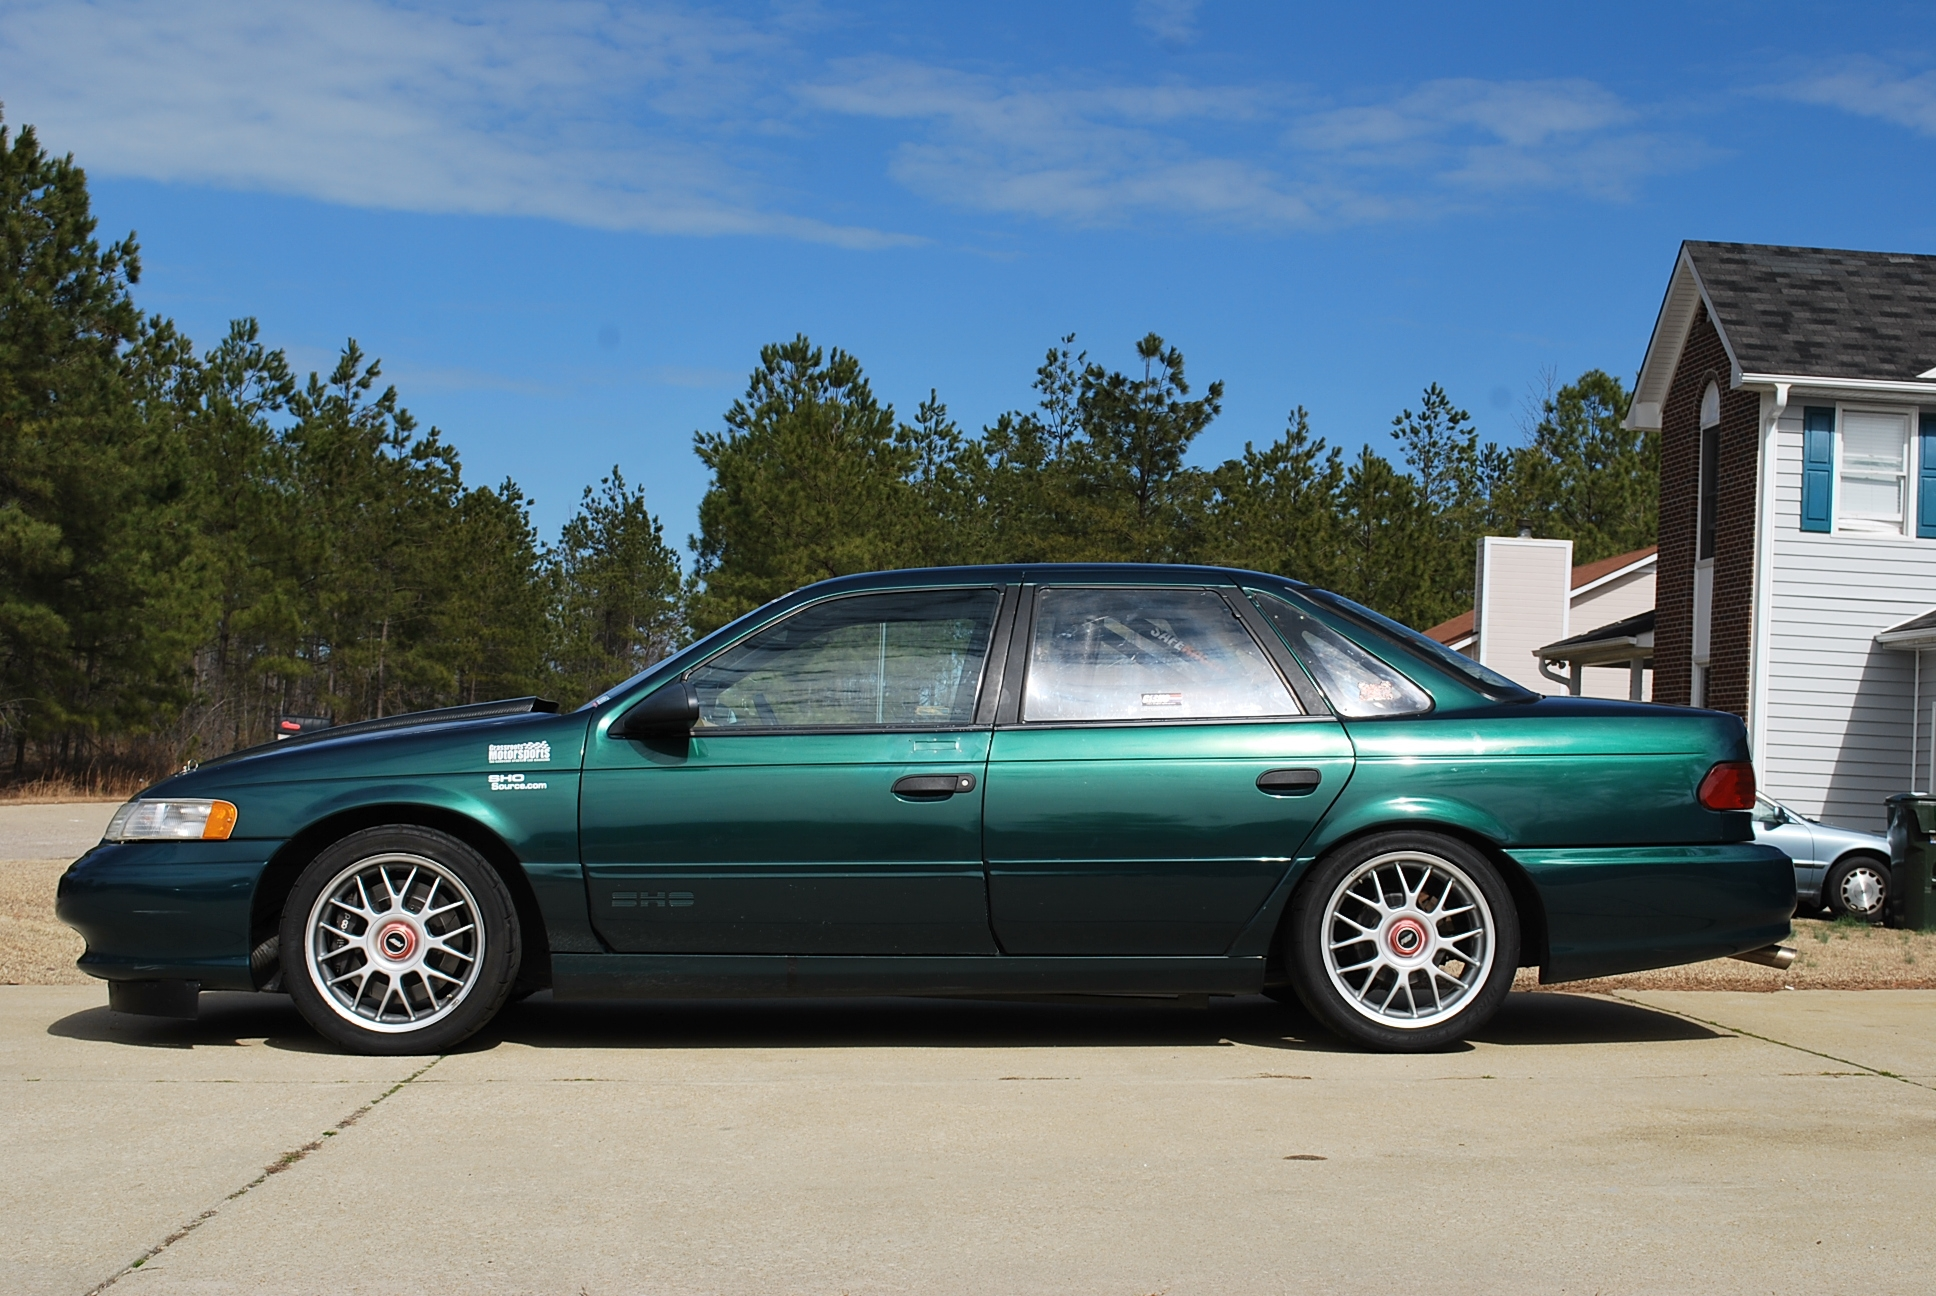 Ford Fayetteville Nc >> SHOspazz92's 1992 Ford Taurus in Fayetteville, NC